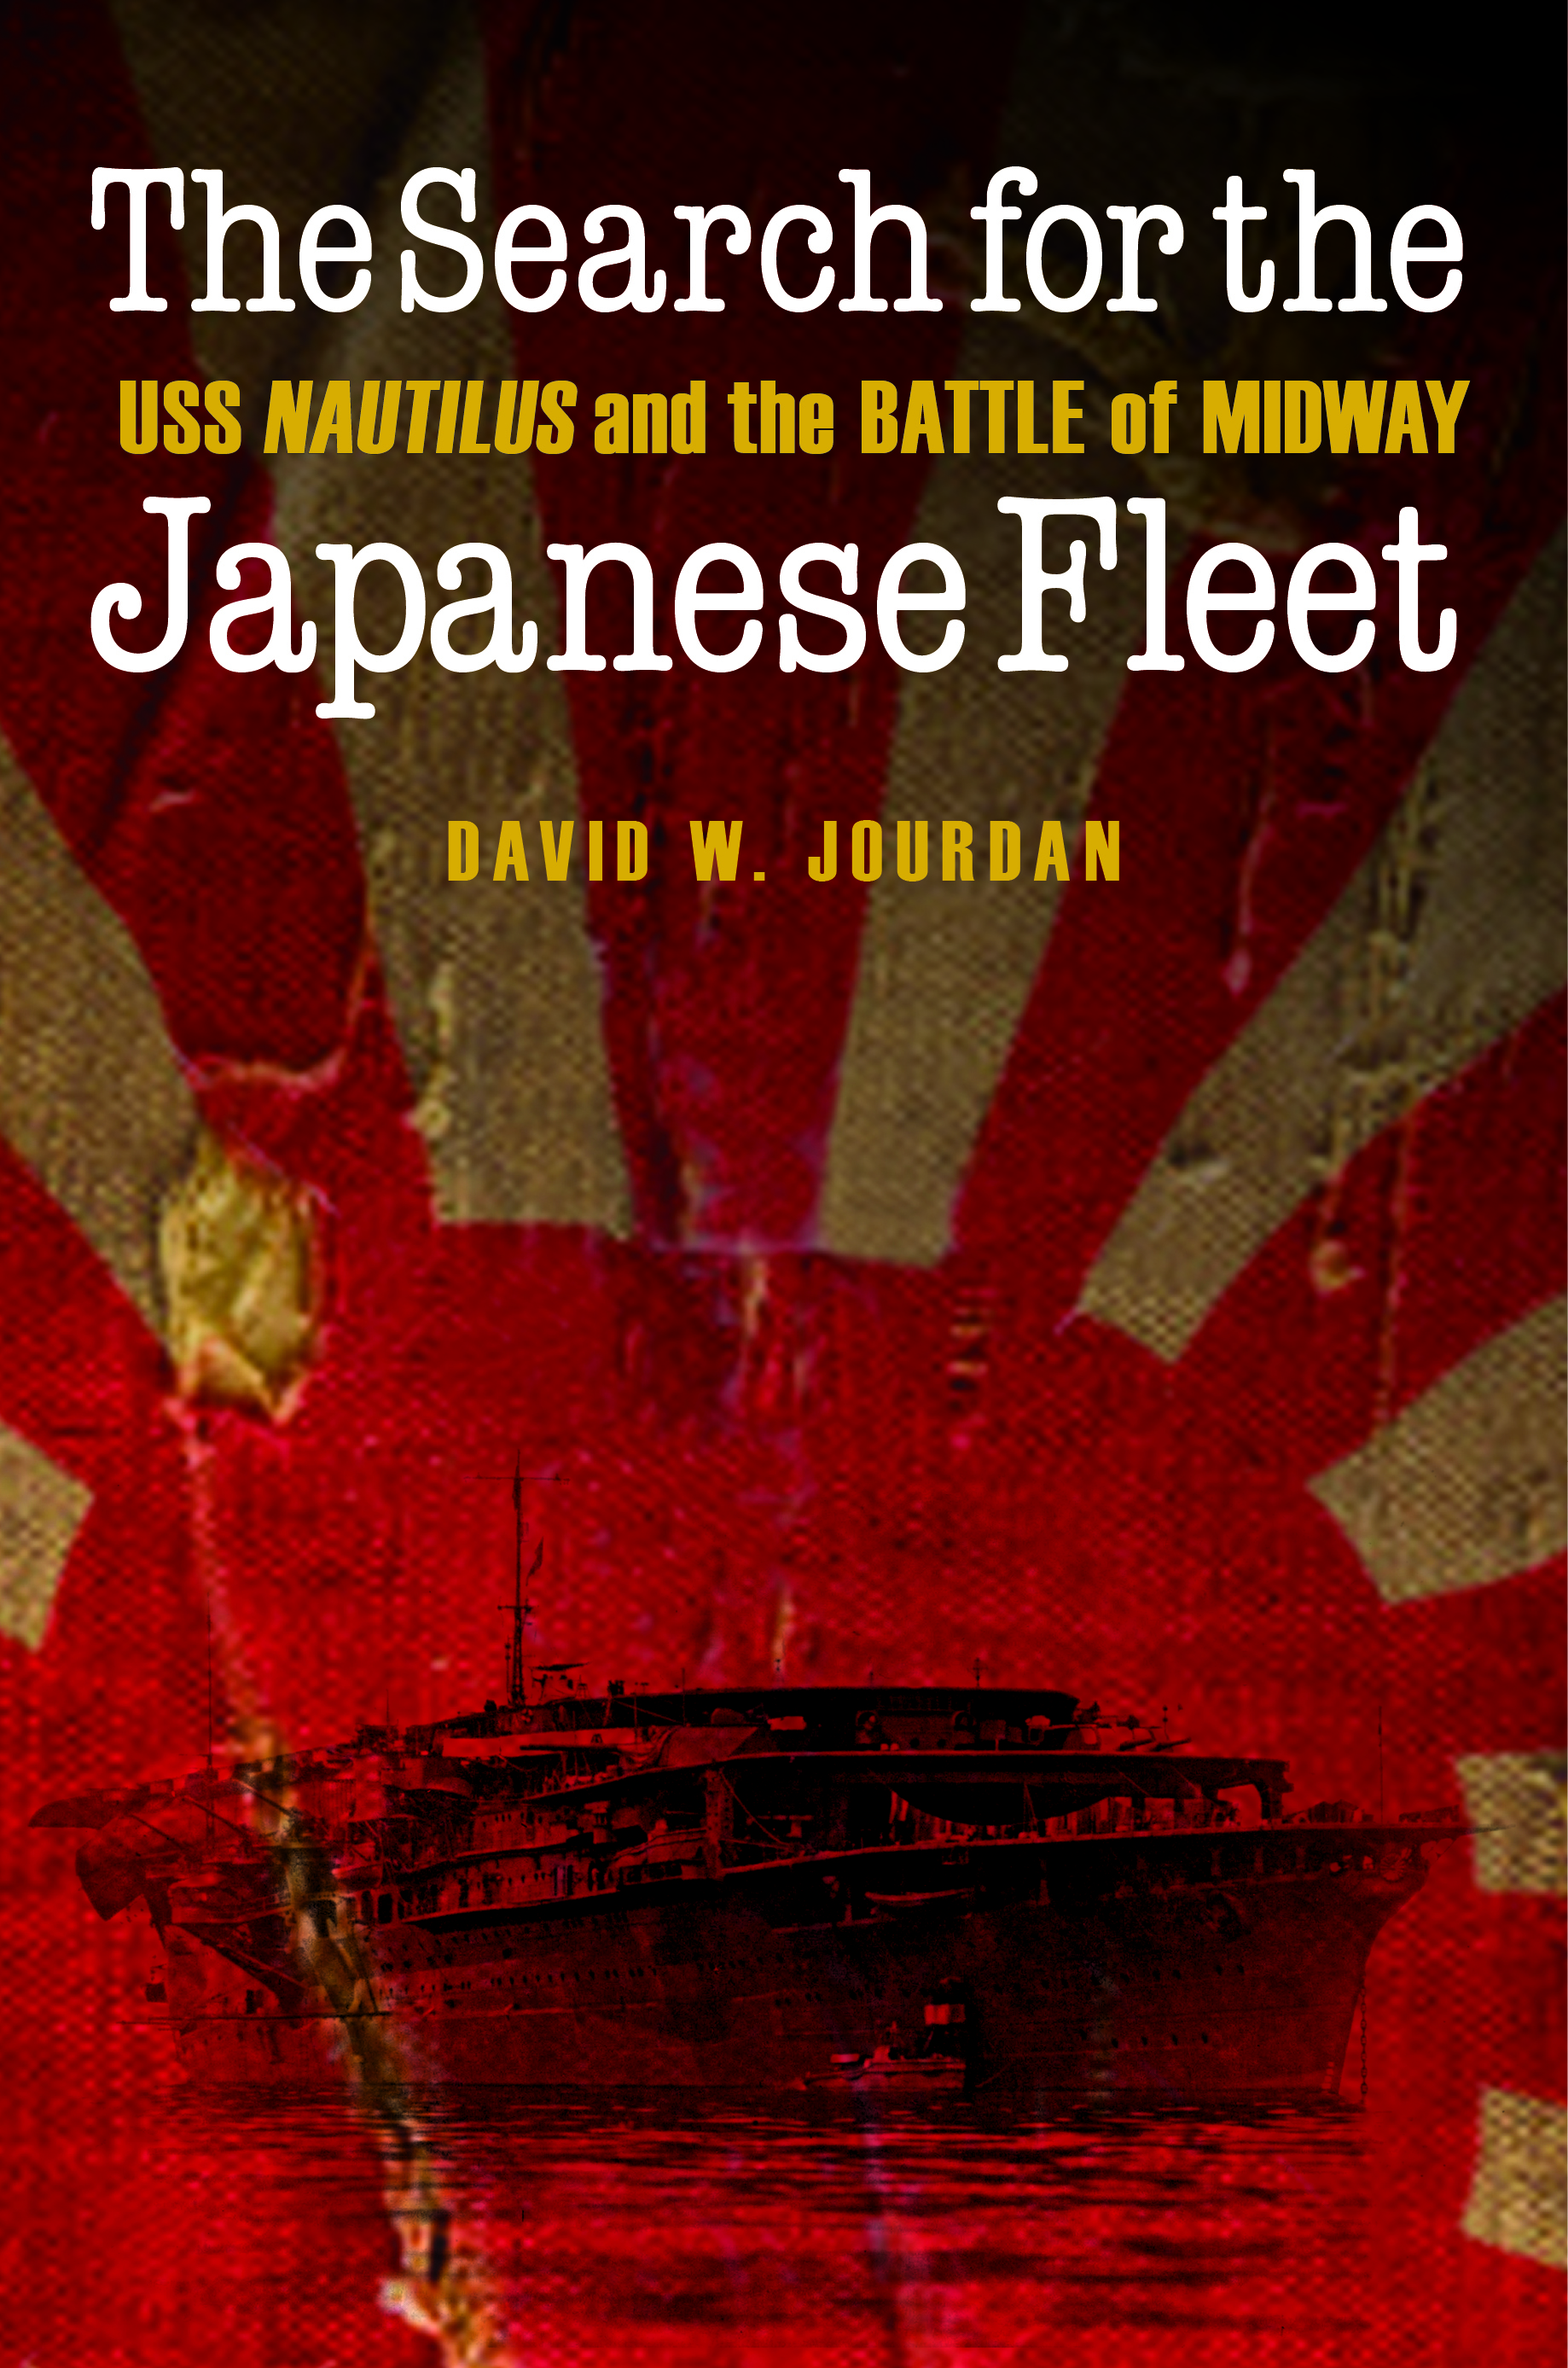 The Search for the Japanese Fleet — USS Nautilus and the Battle of Midway by David W. Jourdan